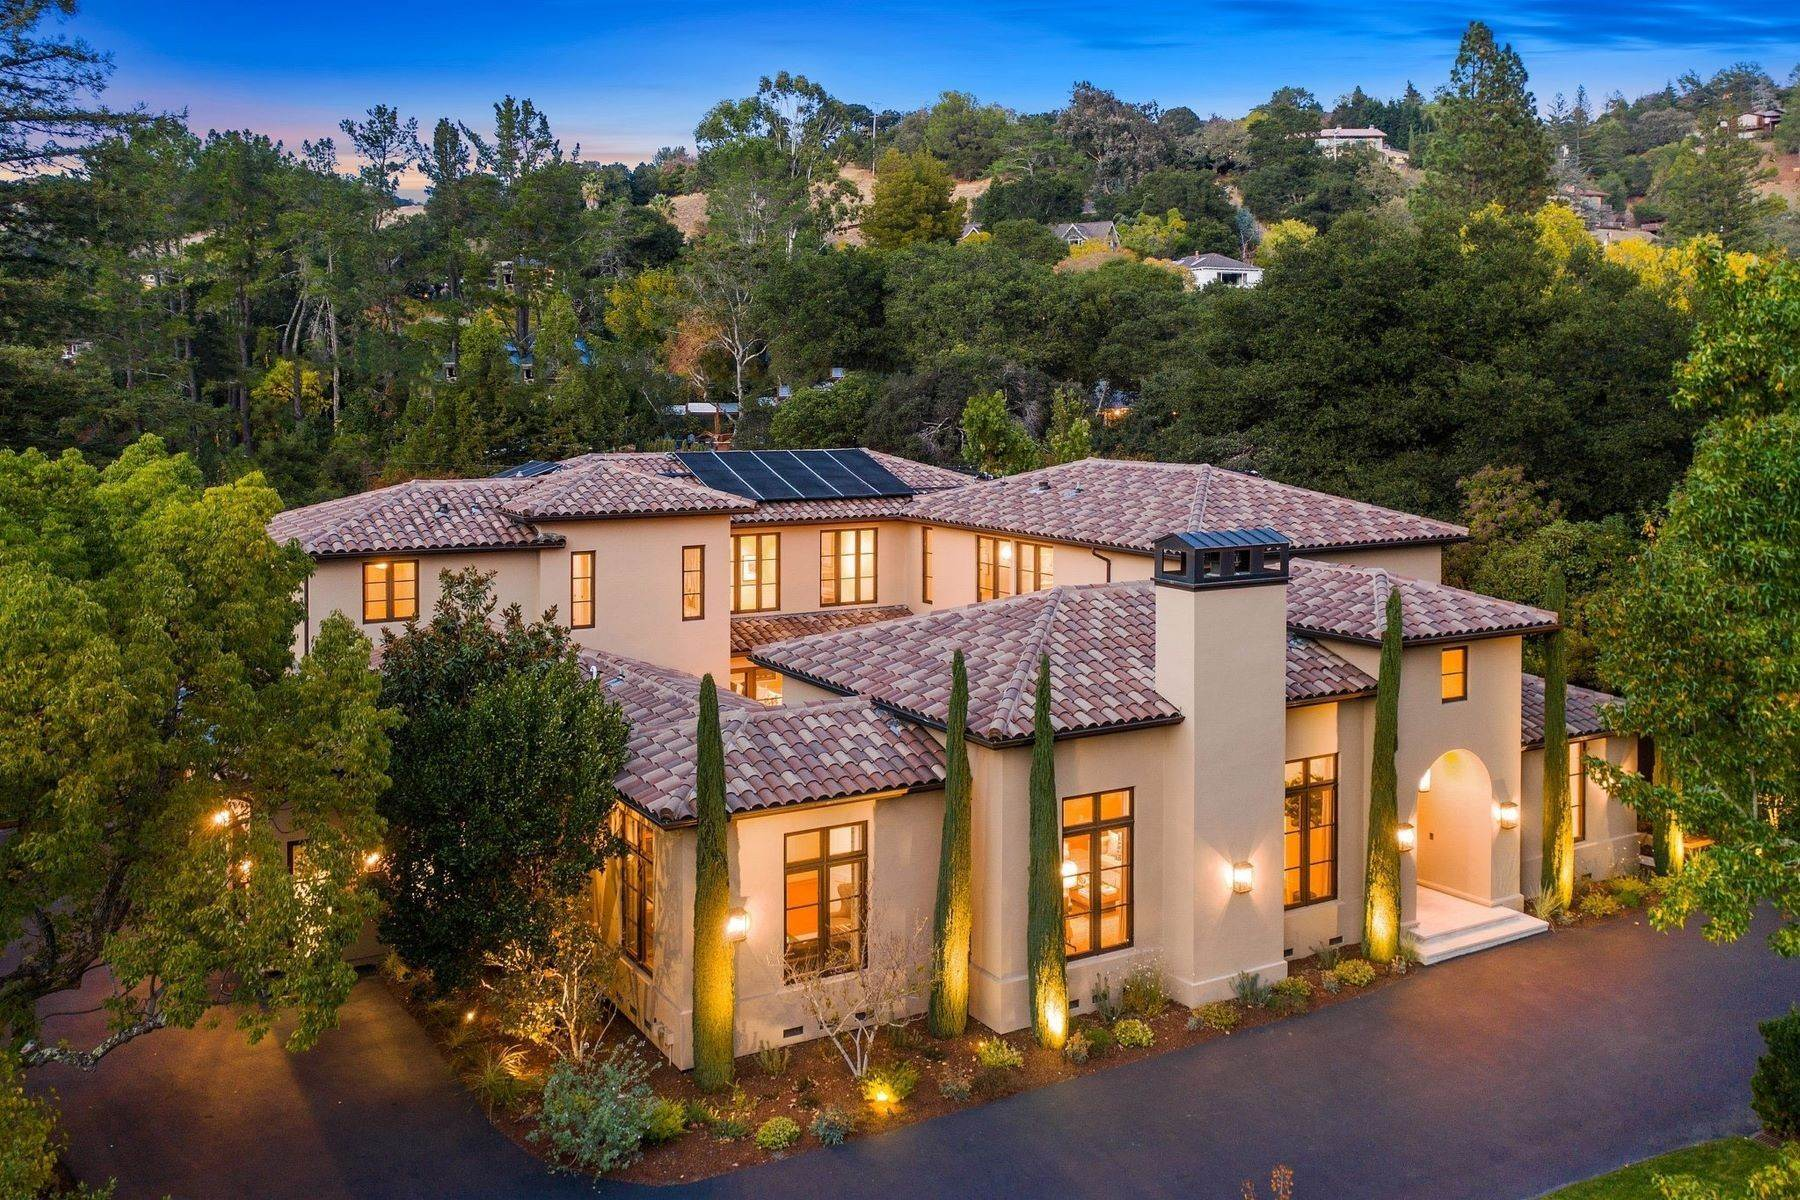 Single Family Homes for Sale at European Resort-Like Estate 109 Fawn Drive San Anselmo, California 94960 United States